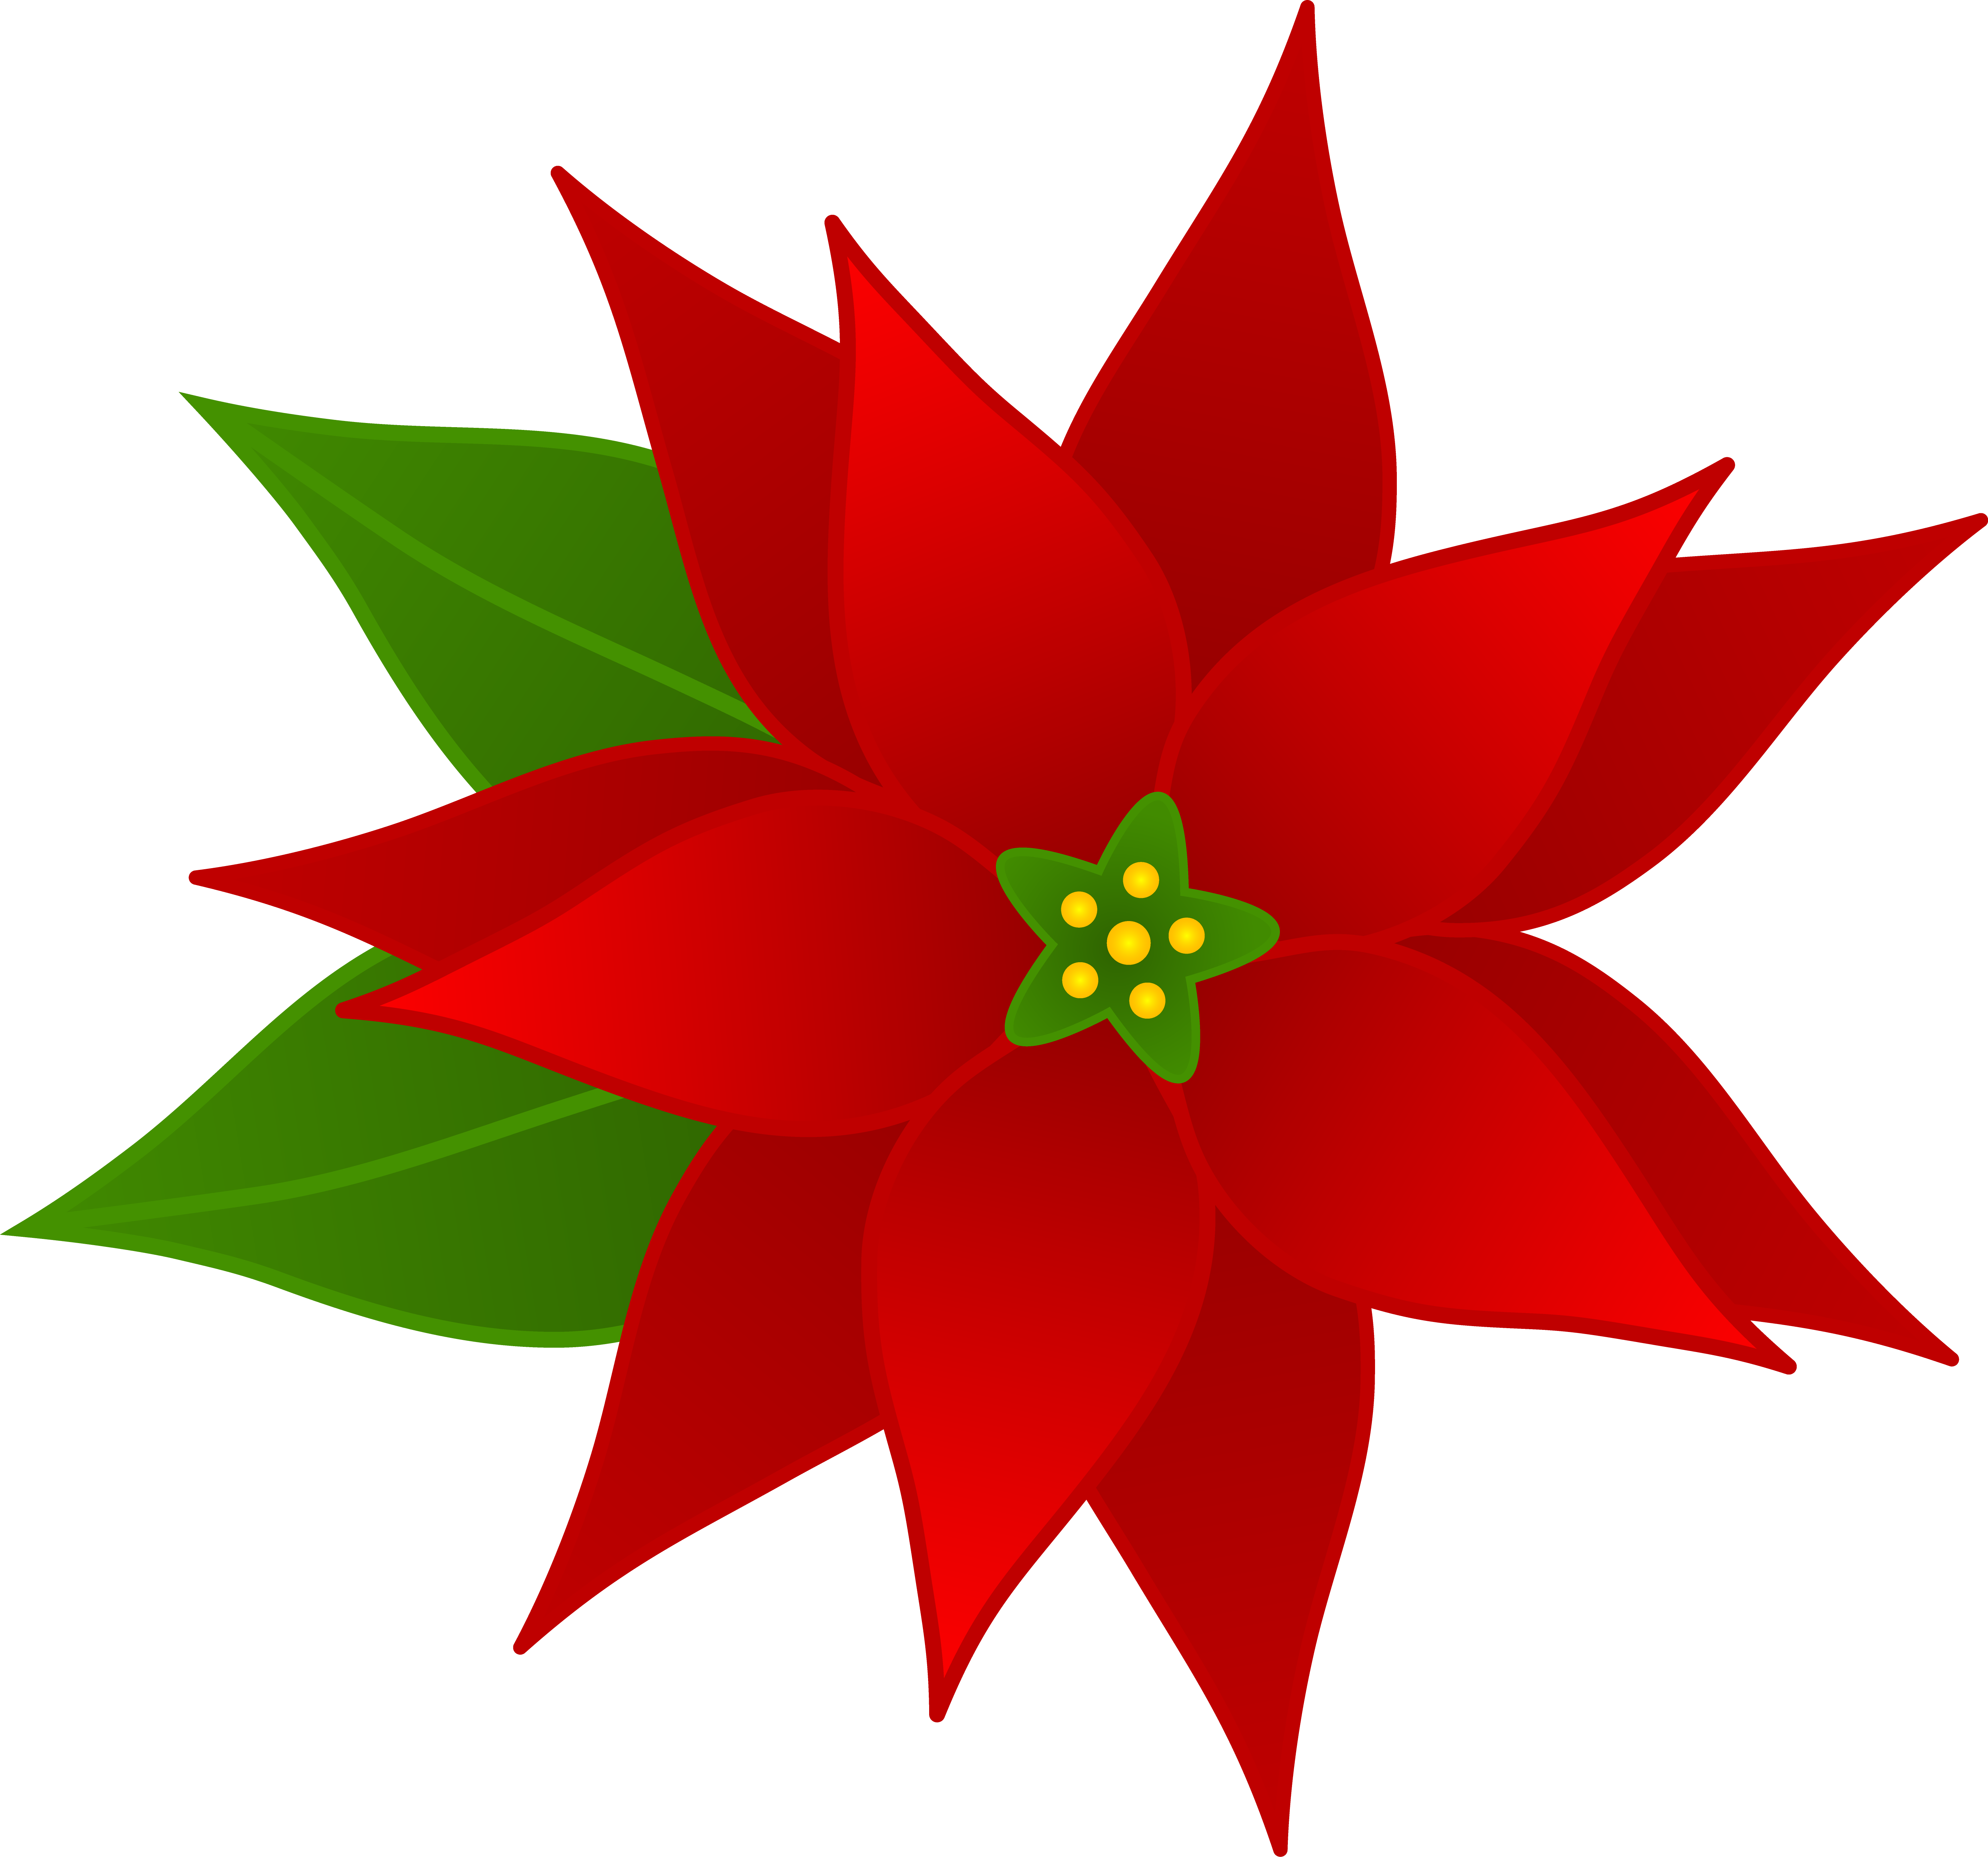 svg black and white download Free cliparts download clip. Poinsettias clipart.